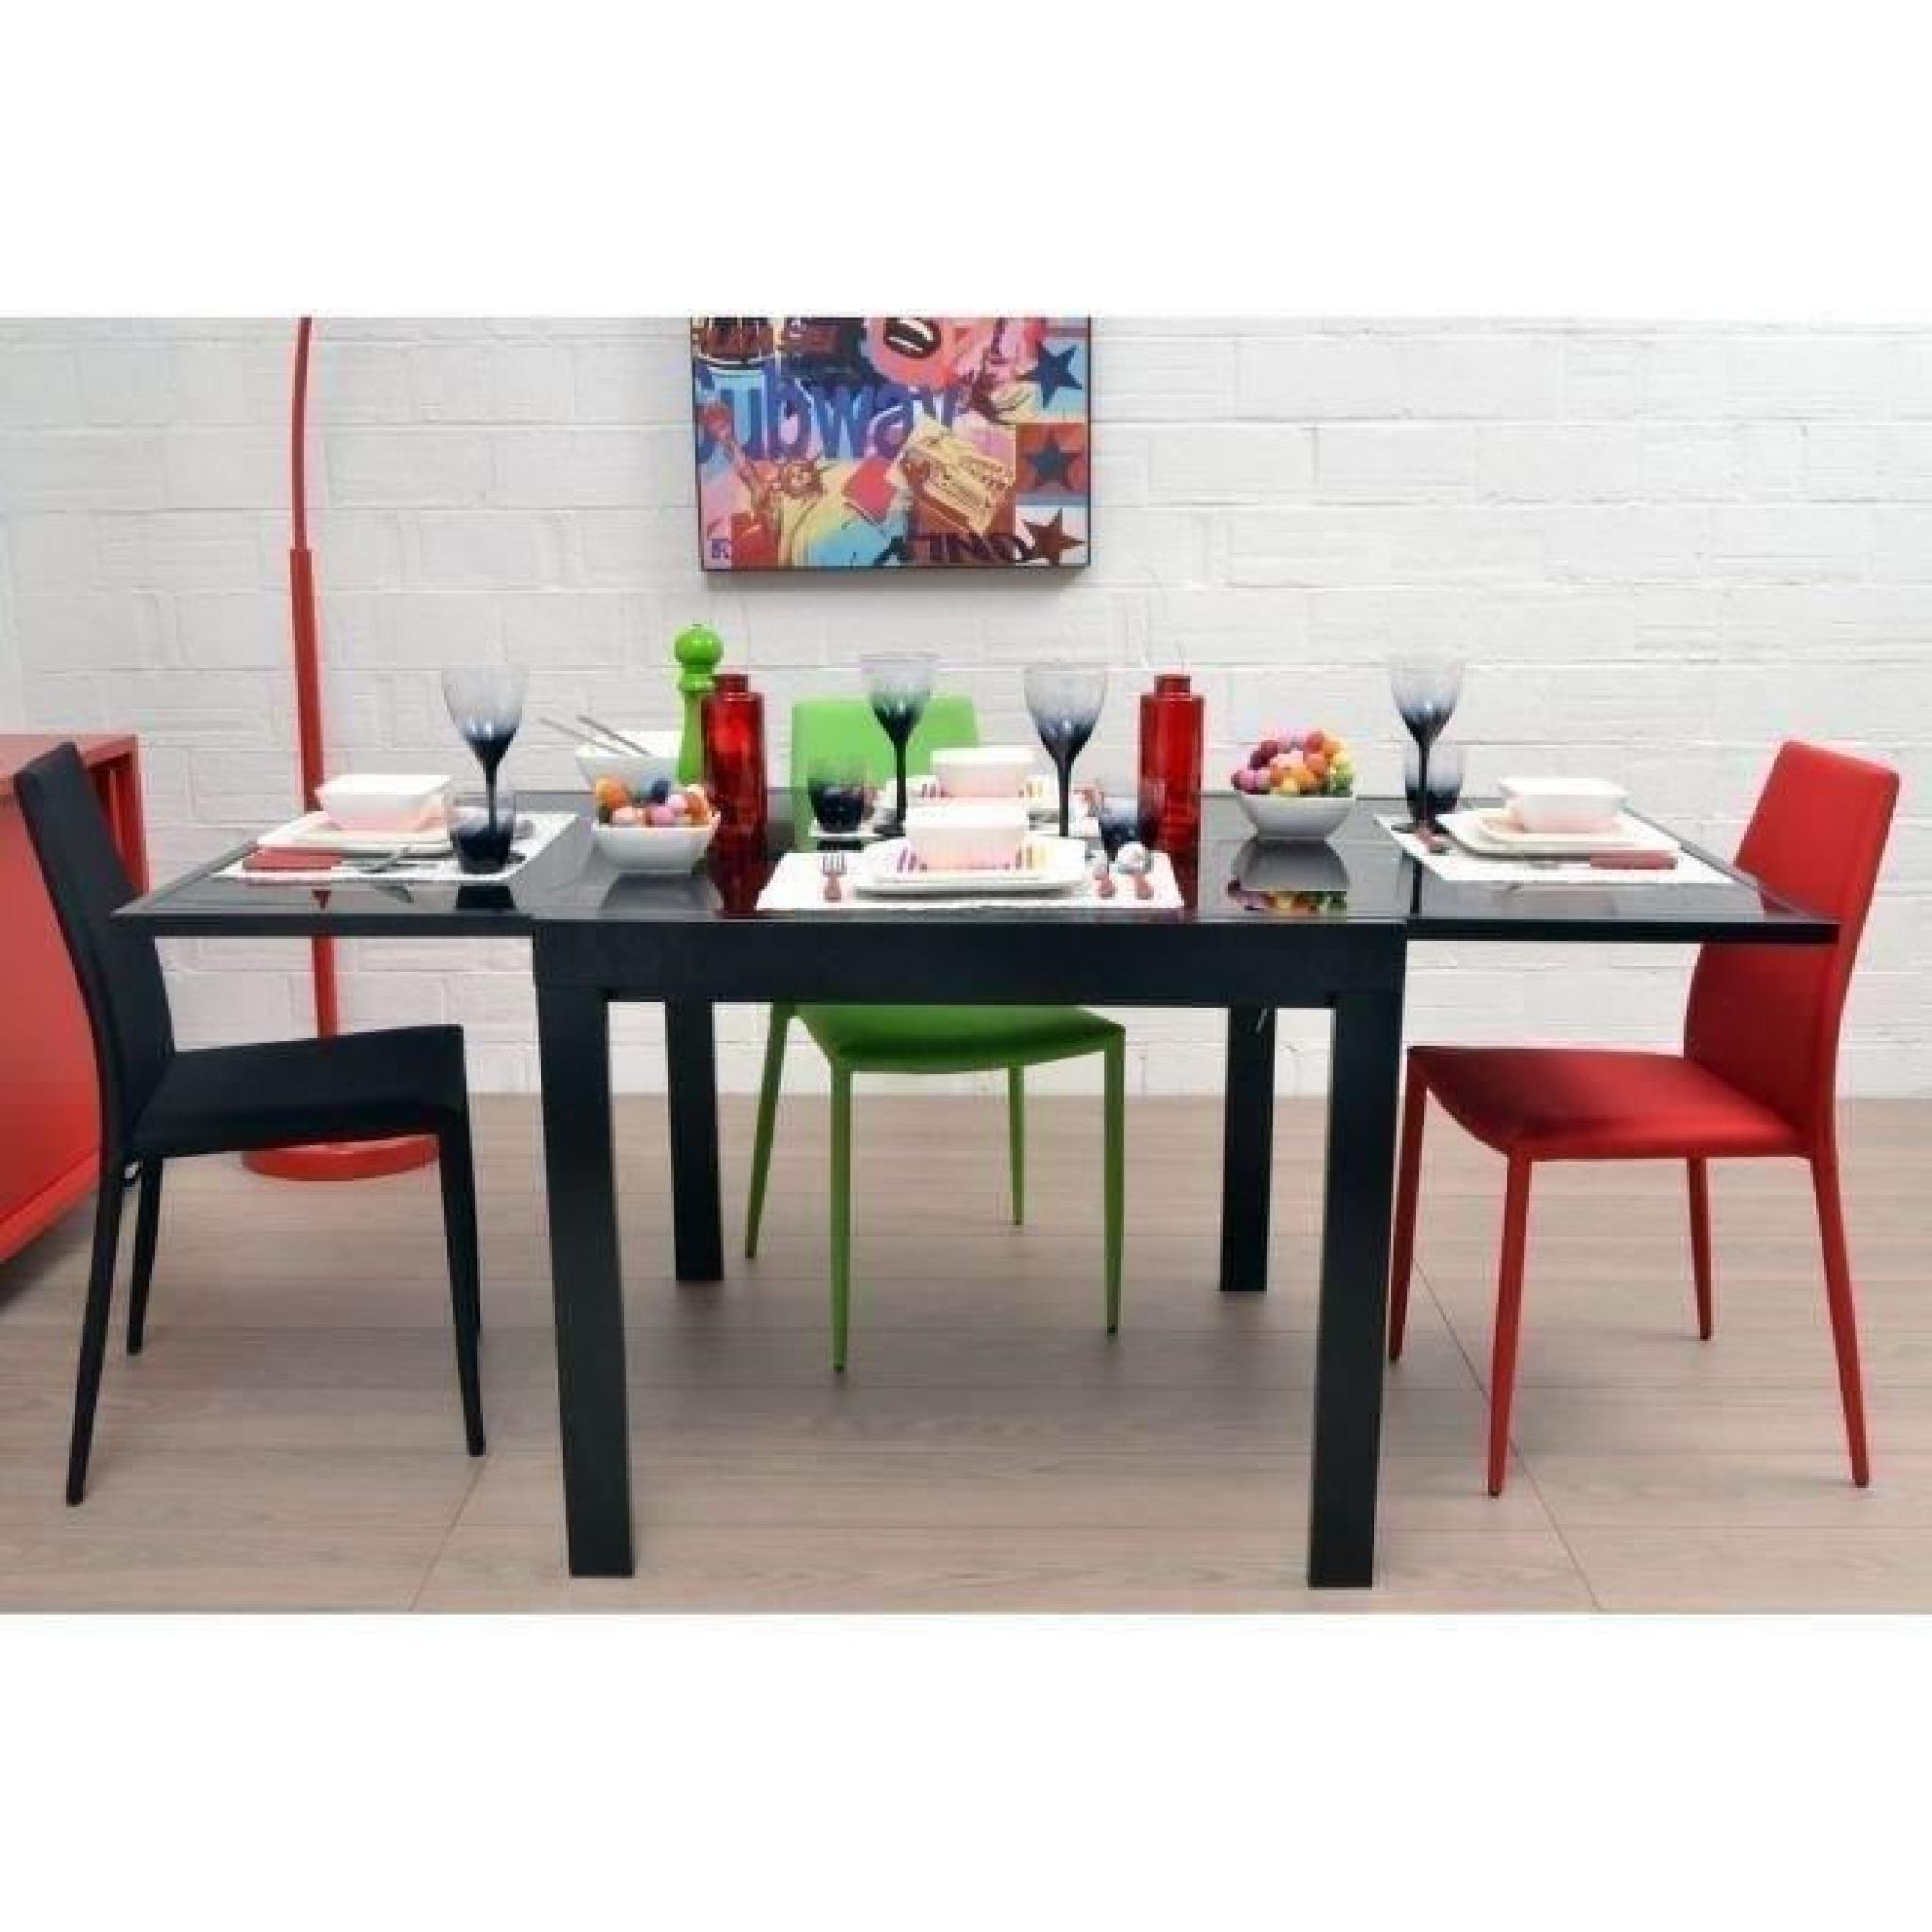 exit table extensible noire 90 180cm en verre achat vente table salle a manger pas cher. Black Bedroom Furniture Sets. Home Design Ideas